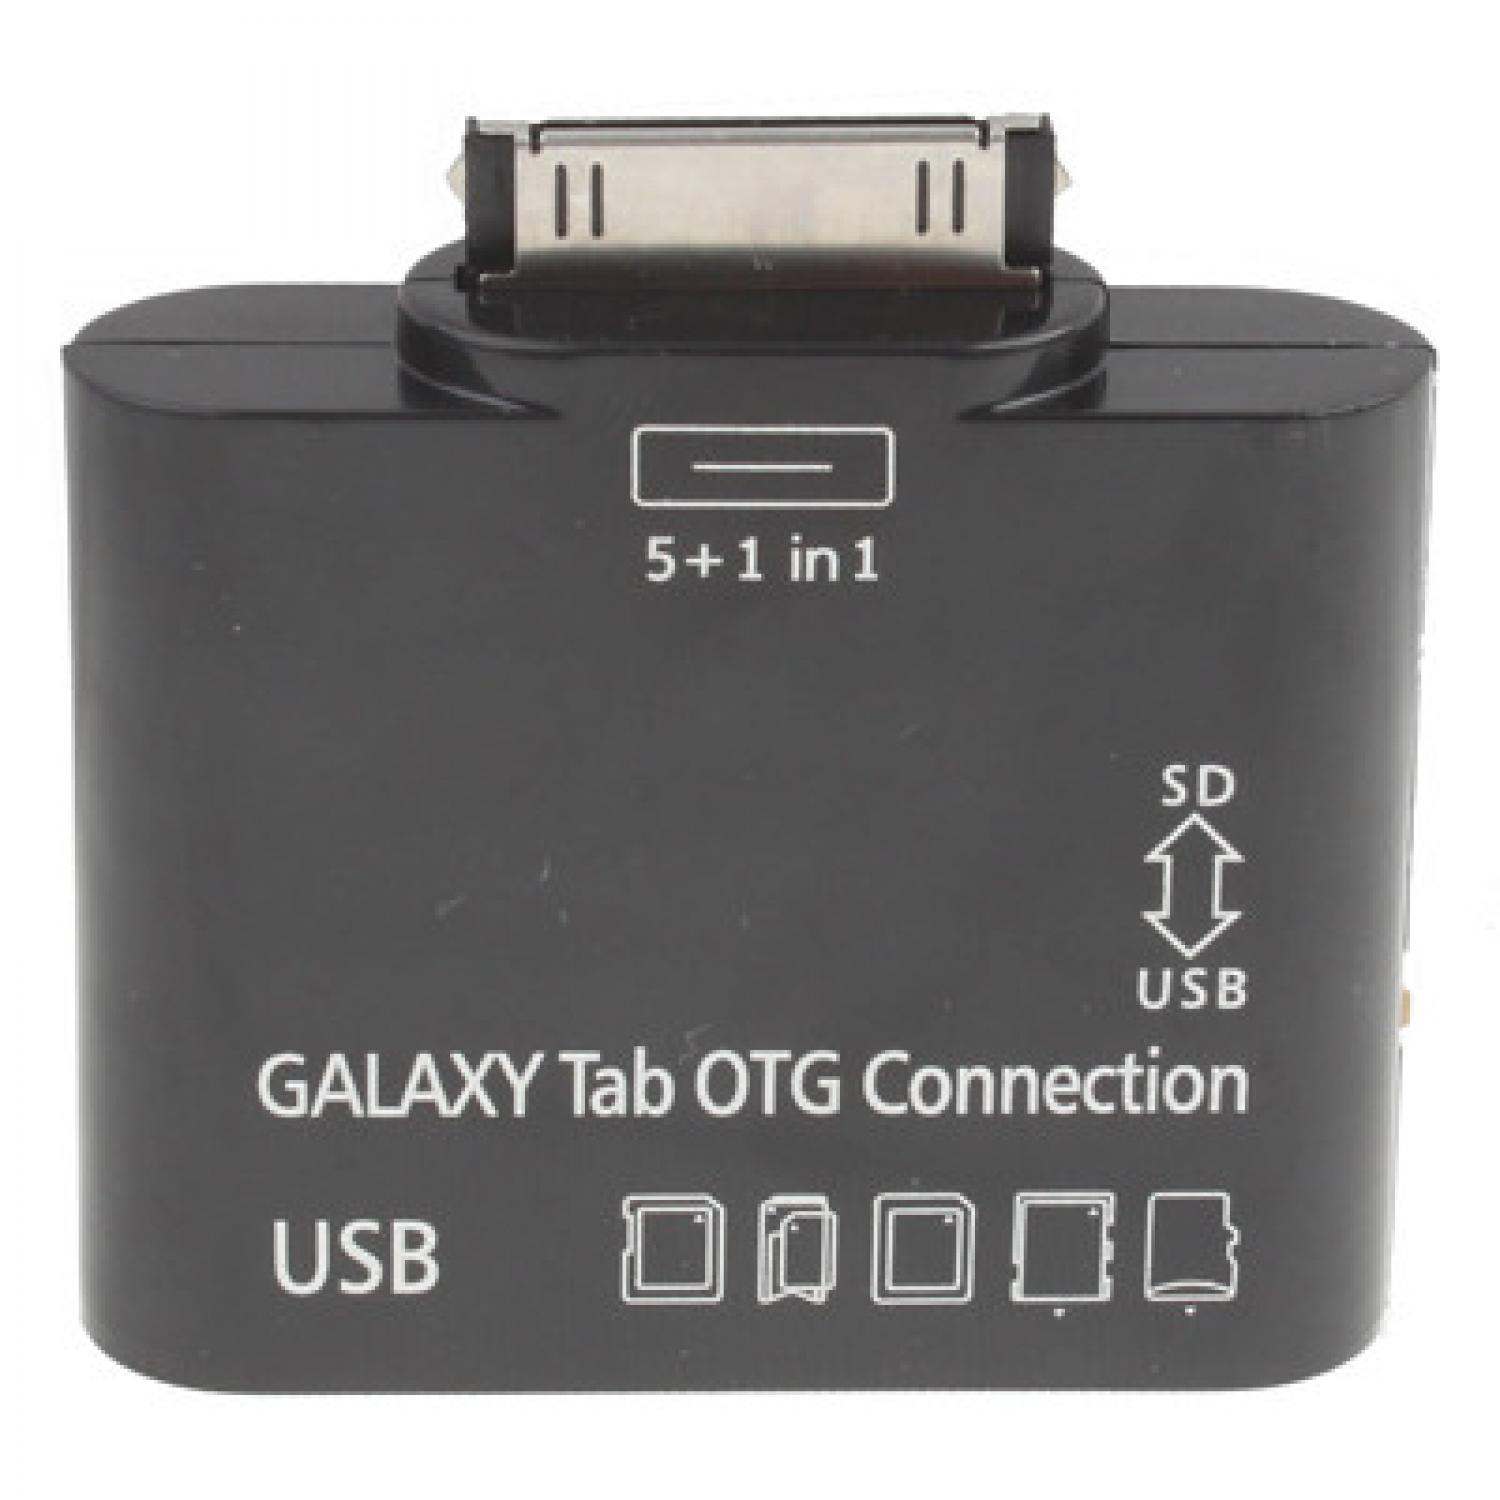 5 in 1 USB OTG Connection Kit for Samsung Galaxy Tab